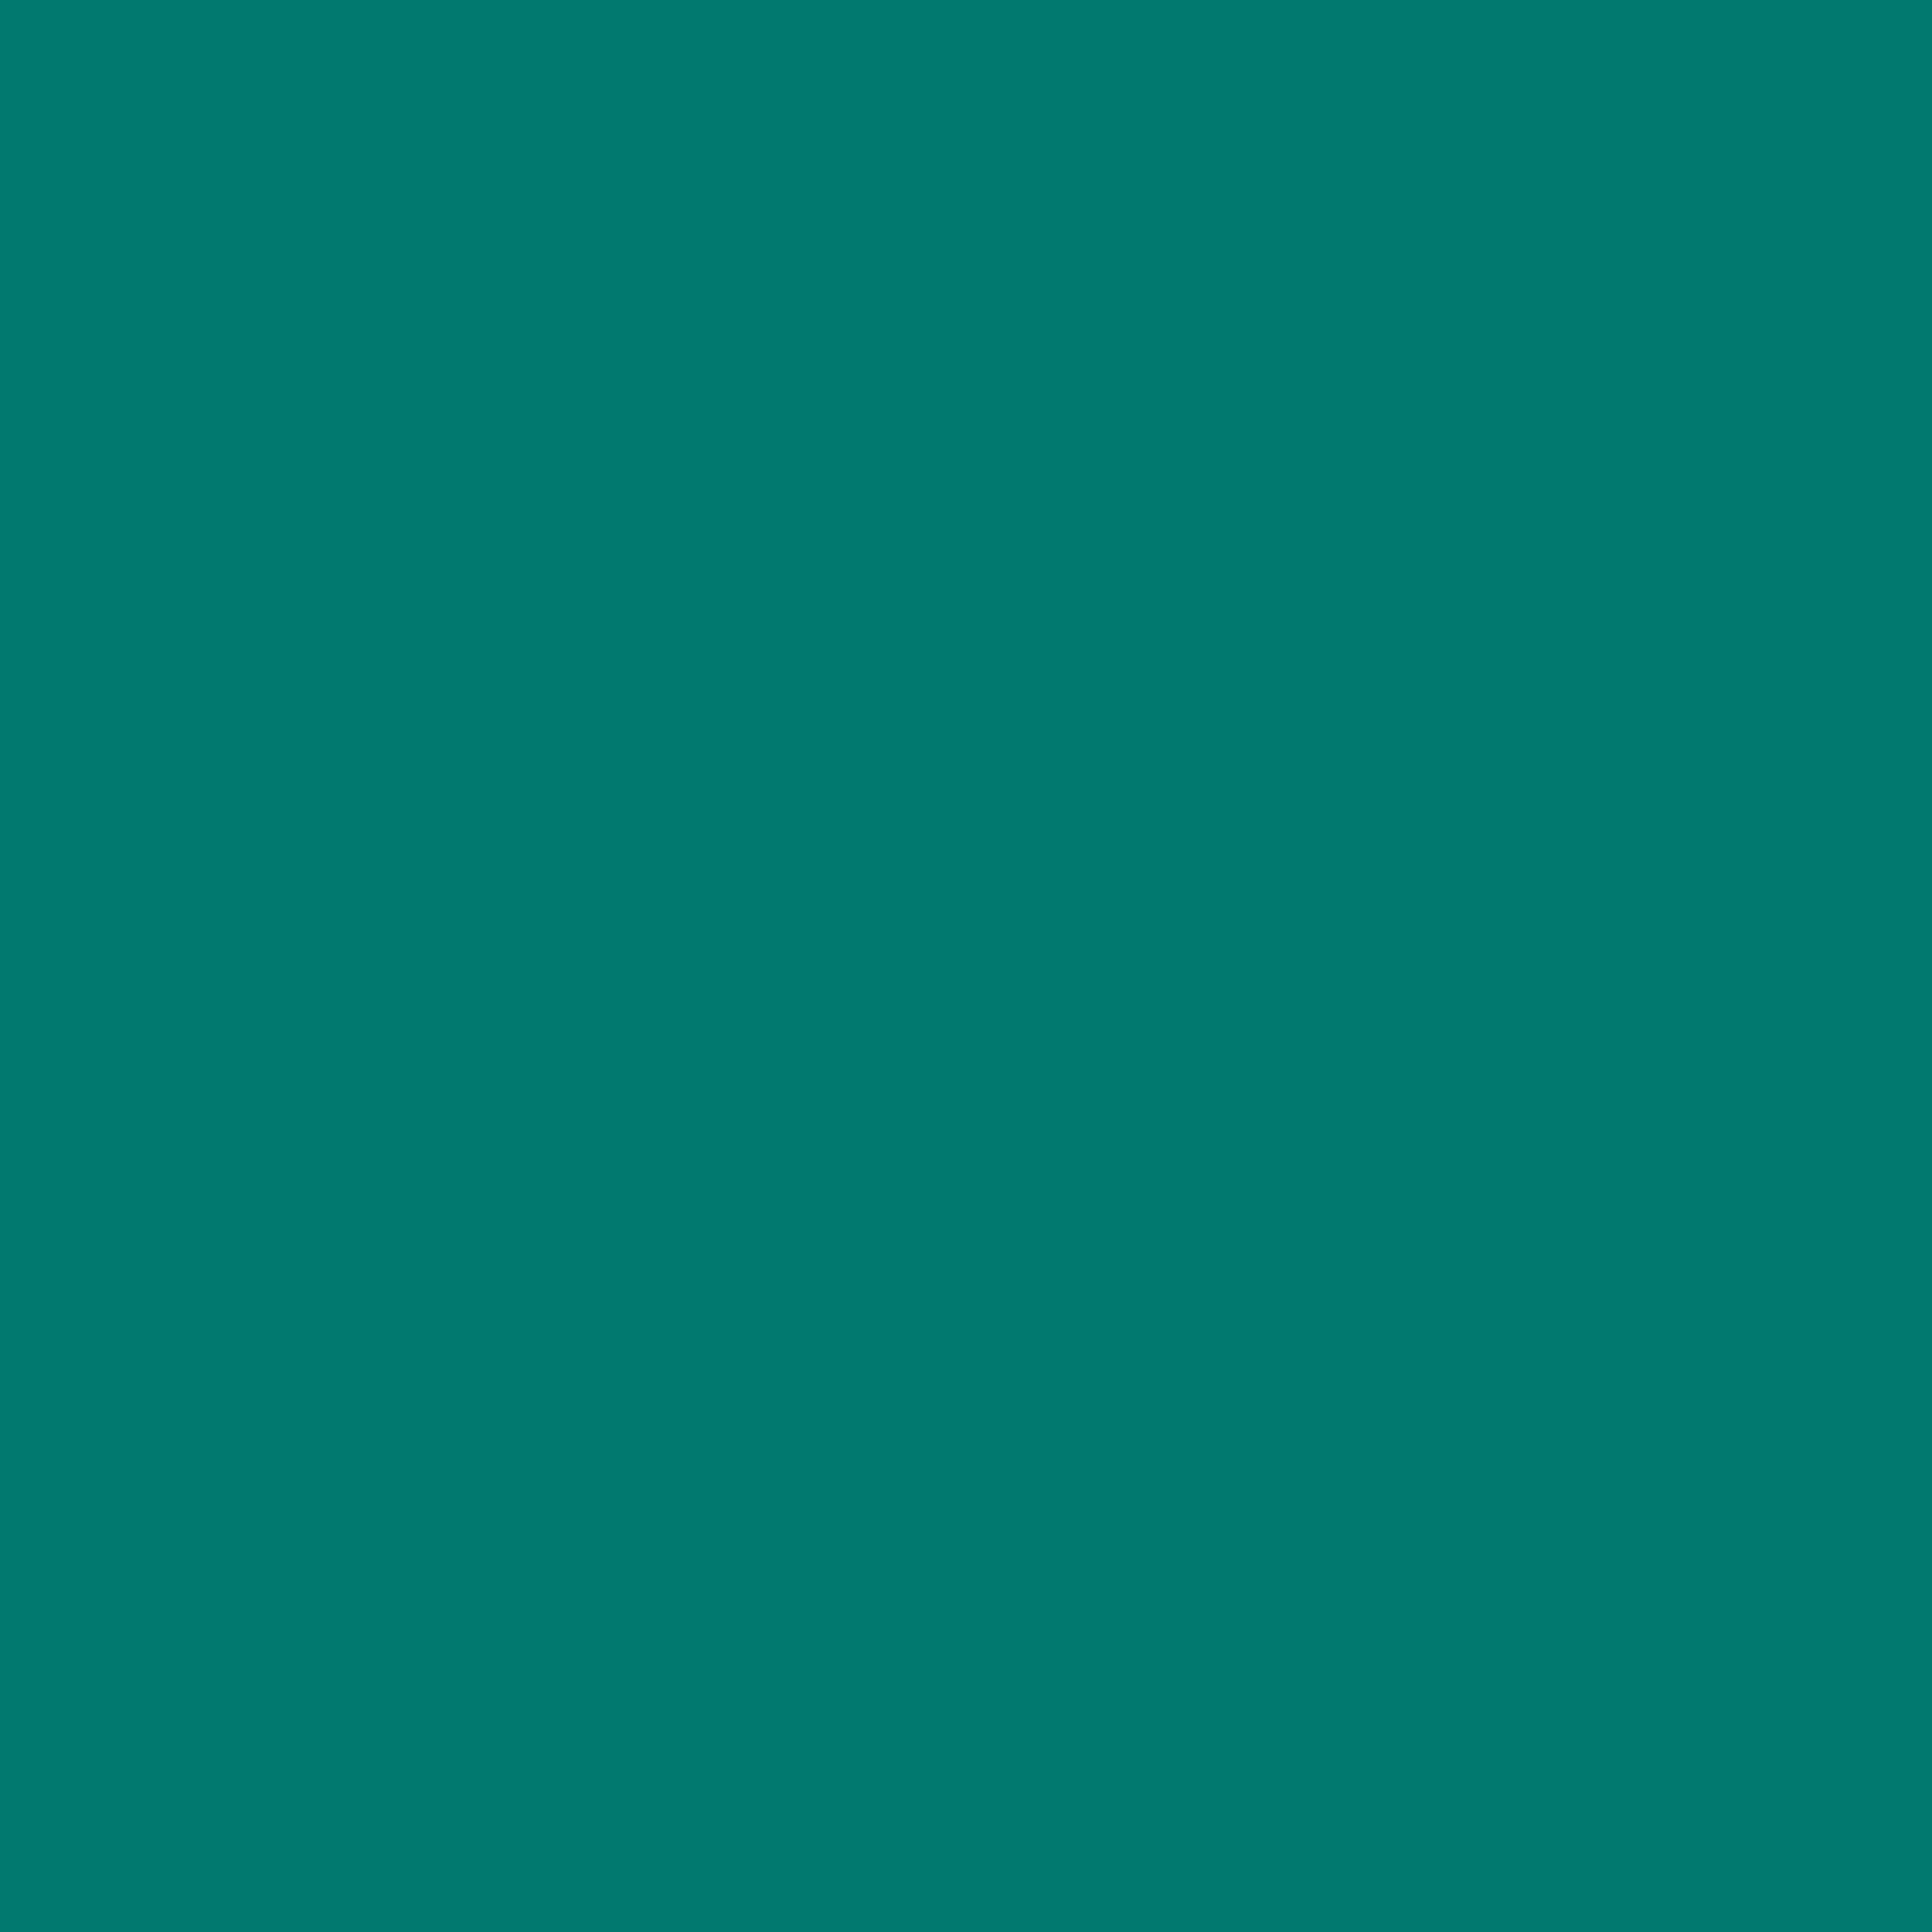 2048x2048 Pine Green Solid Color Background